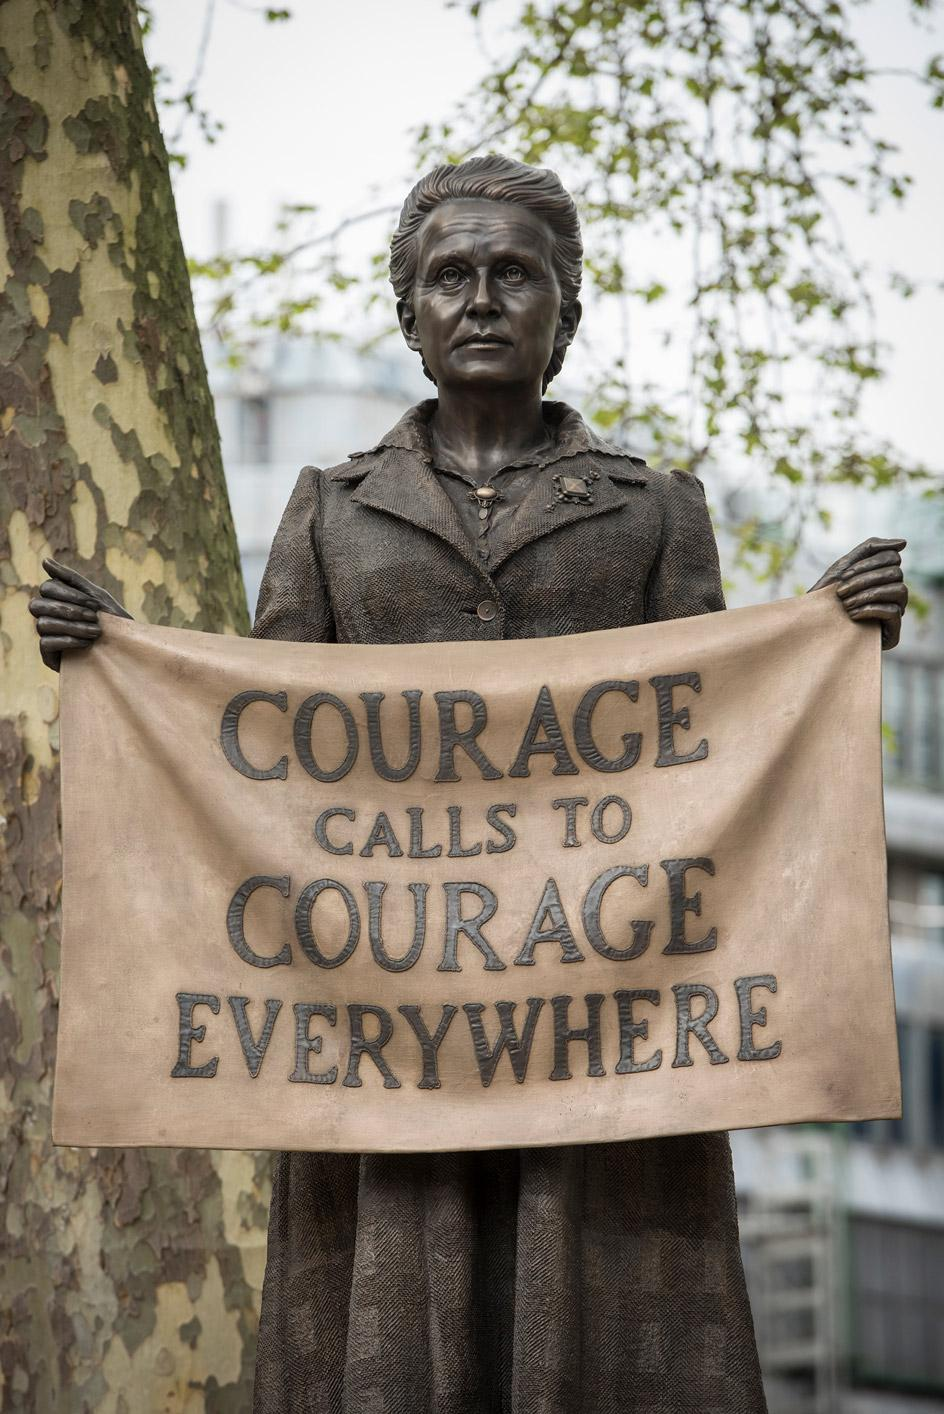 Gillian Wearing's statue of suffragette Millicent Fawcett, 2018 bronze on marble plinth. Commissioned by the the Mayor of London for Parliment Square in London